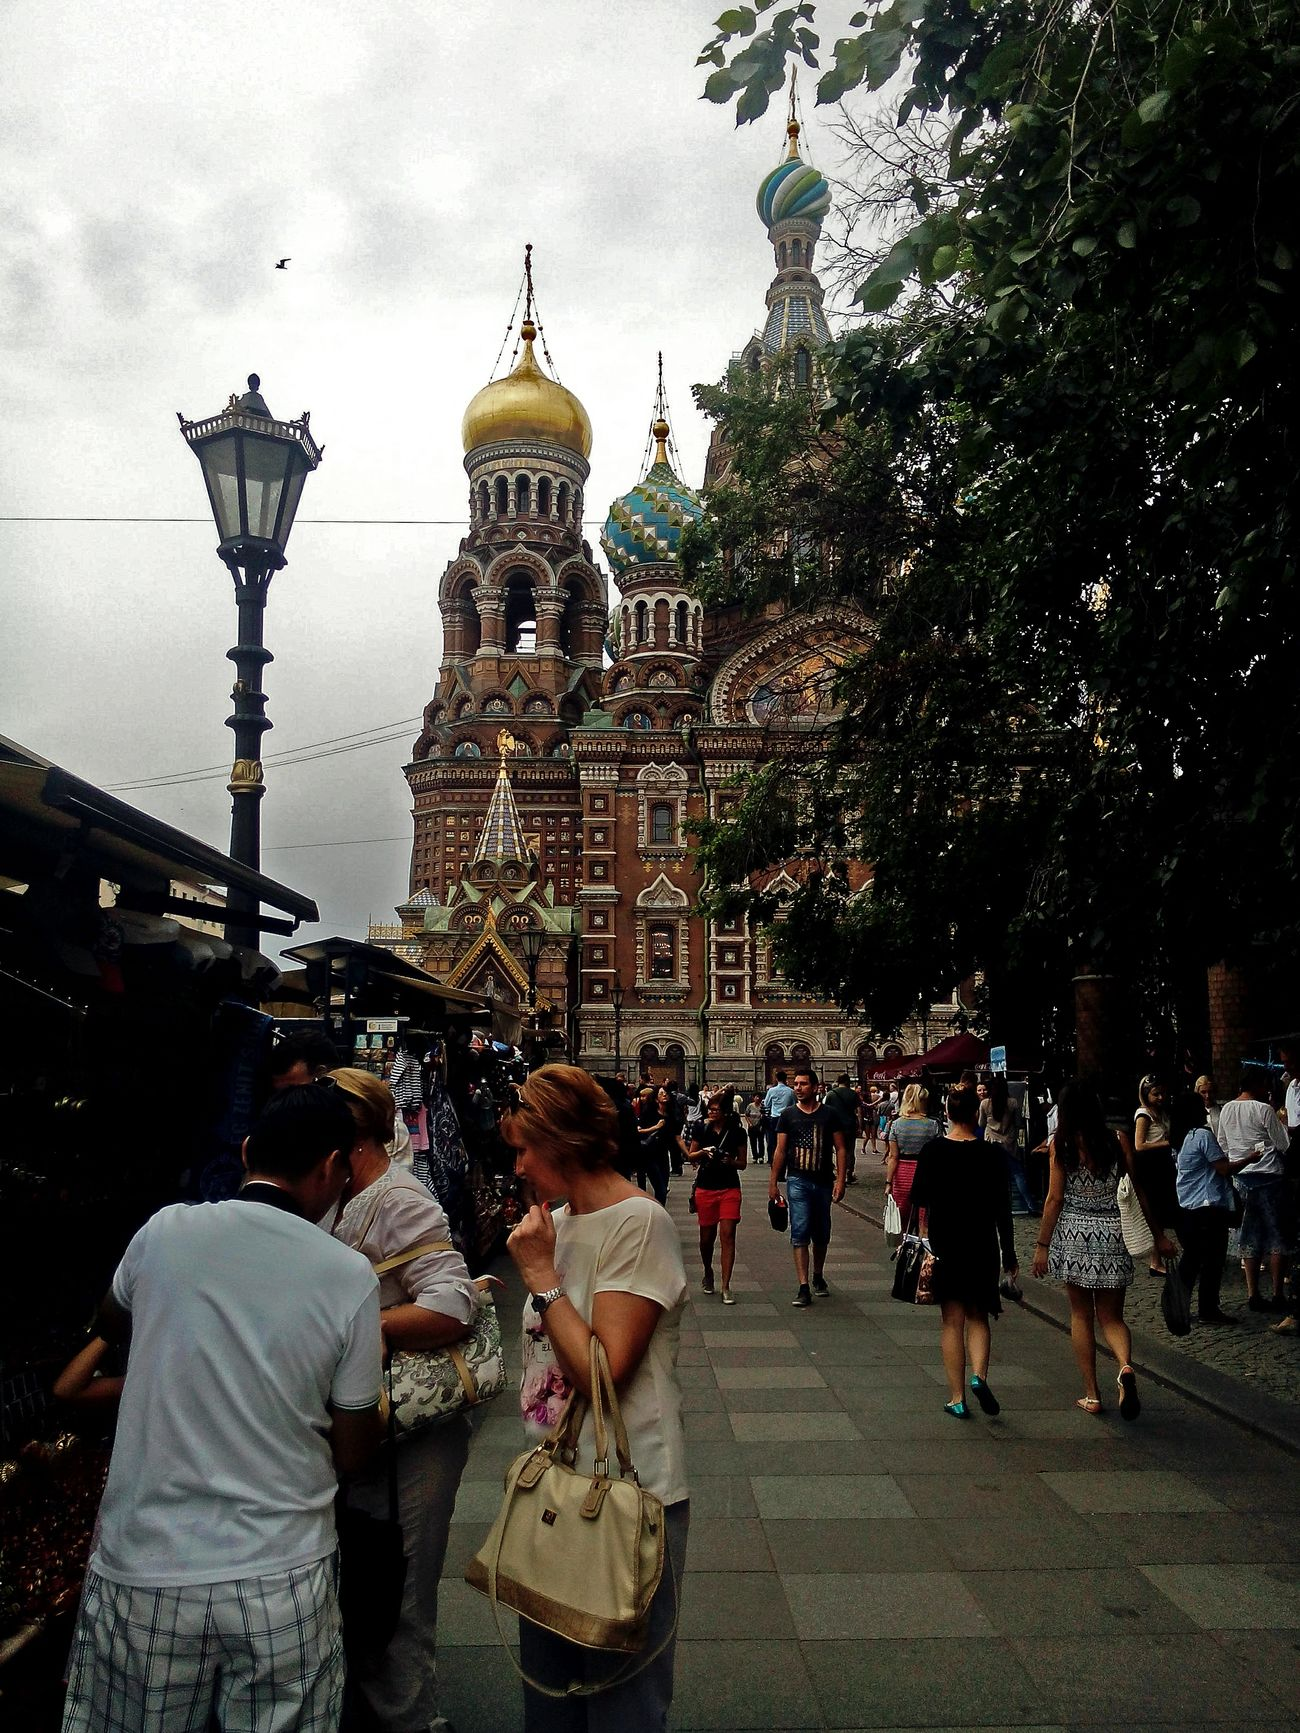 City Travel Celebration Large Group Of People People Outdoors Architecture A Life Russia Питер St.petersburg Life Самый лучший город Санкт-Петербург культура история искусство History Savior On The Spilled Blood Спас на крови Griboyedov Canal канал грибоедова религия Religion